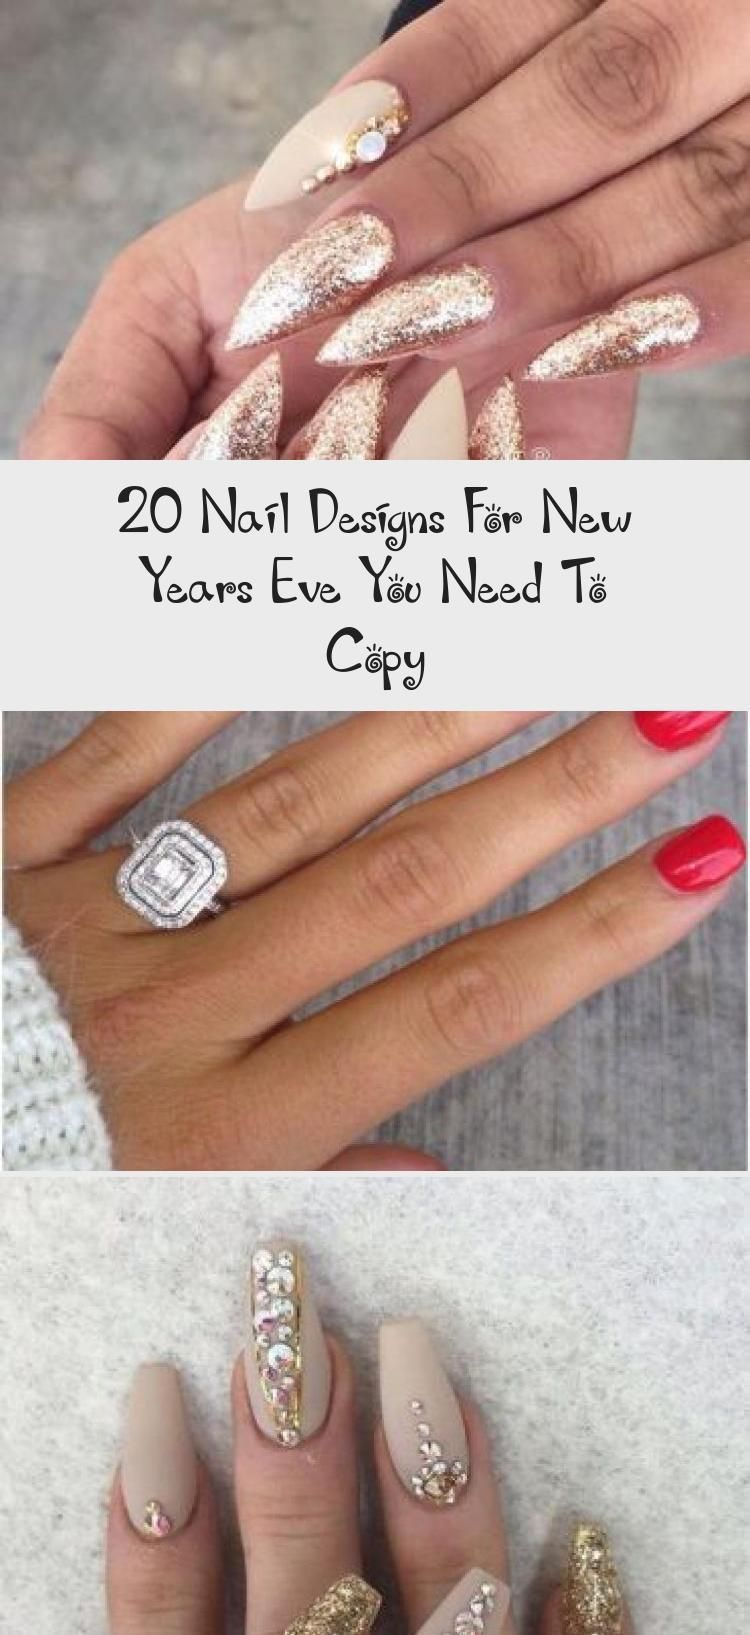 20 Nail Designs For New Years Eve You Need To Copy, Copy